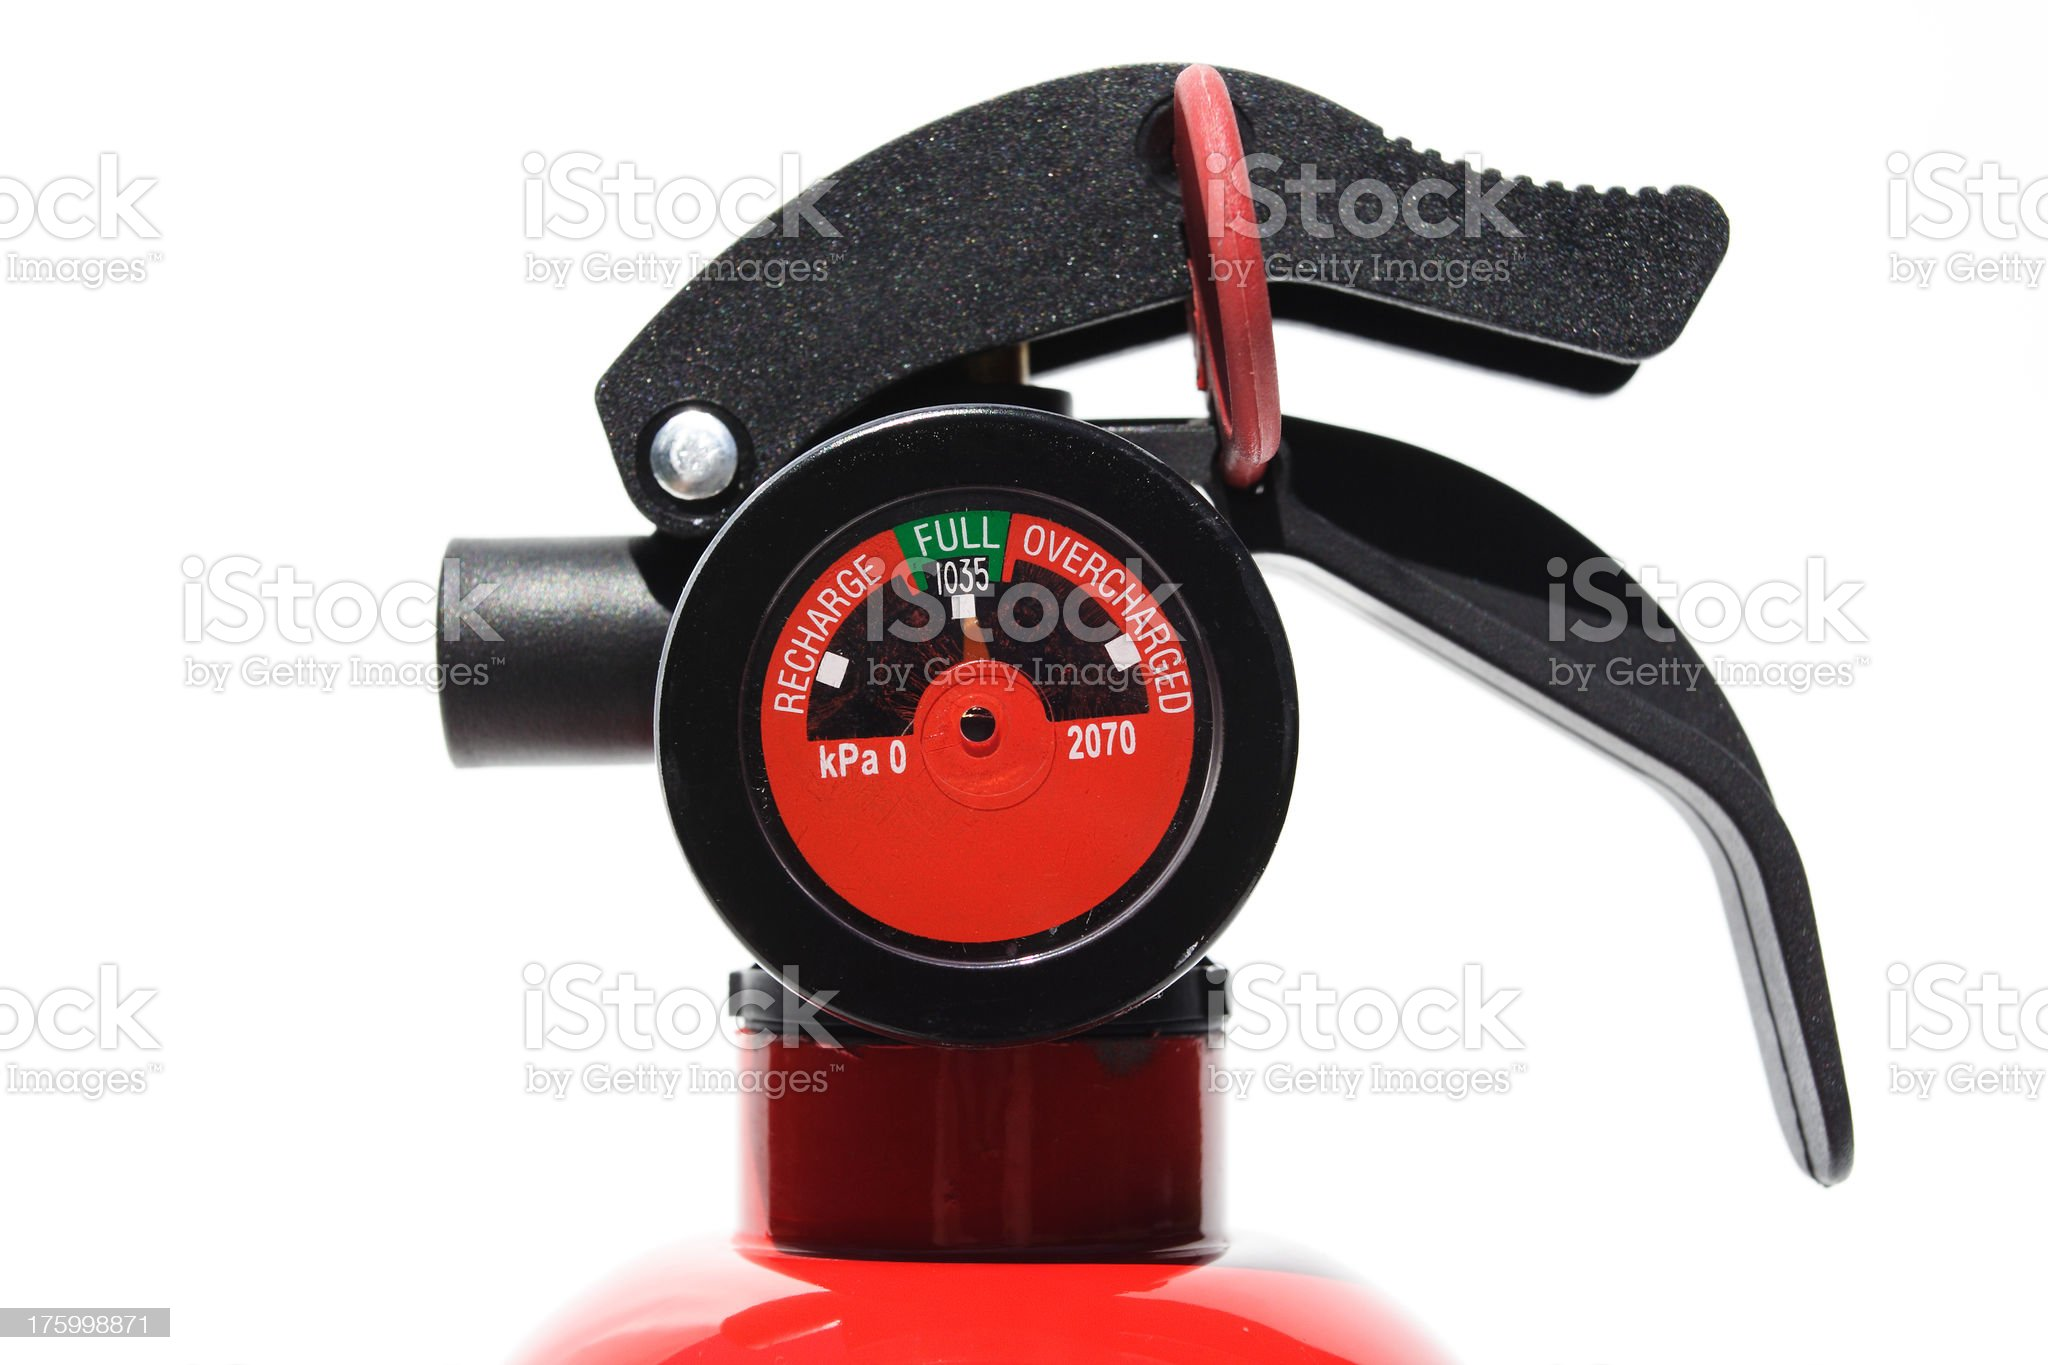 detail of extinguisher mechanism royalty-free stock photo